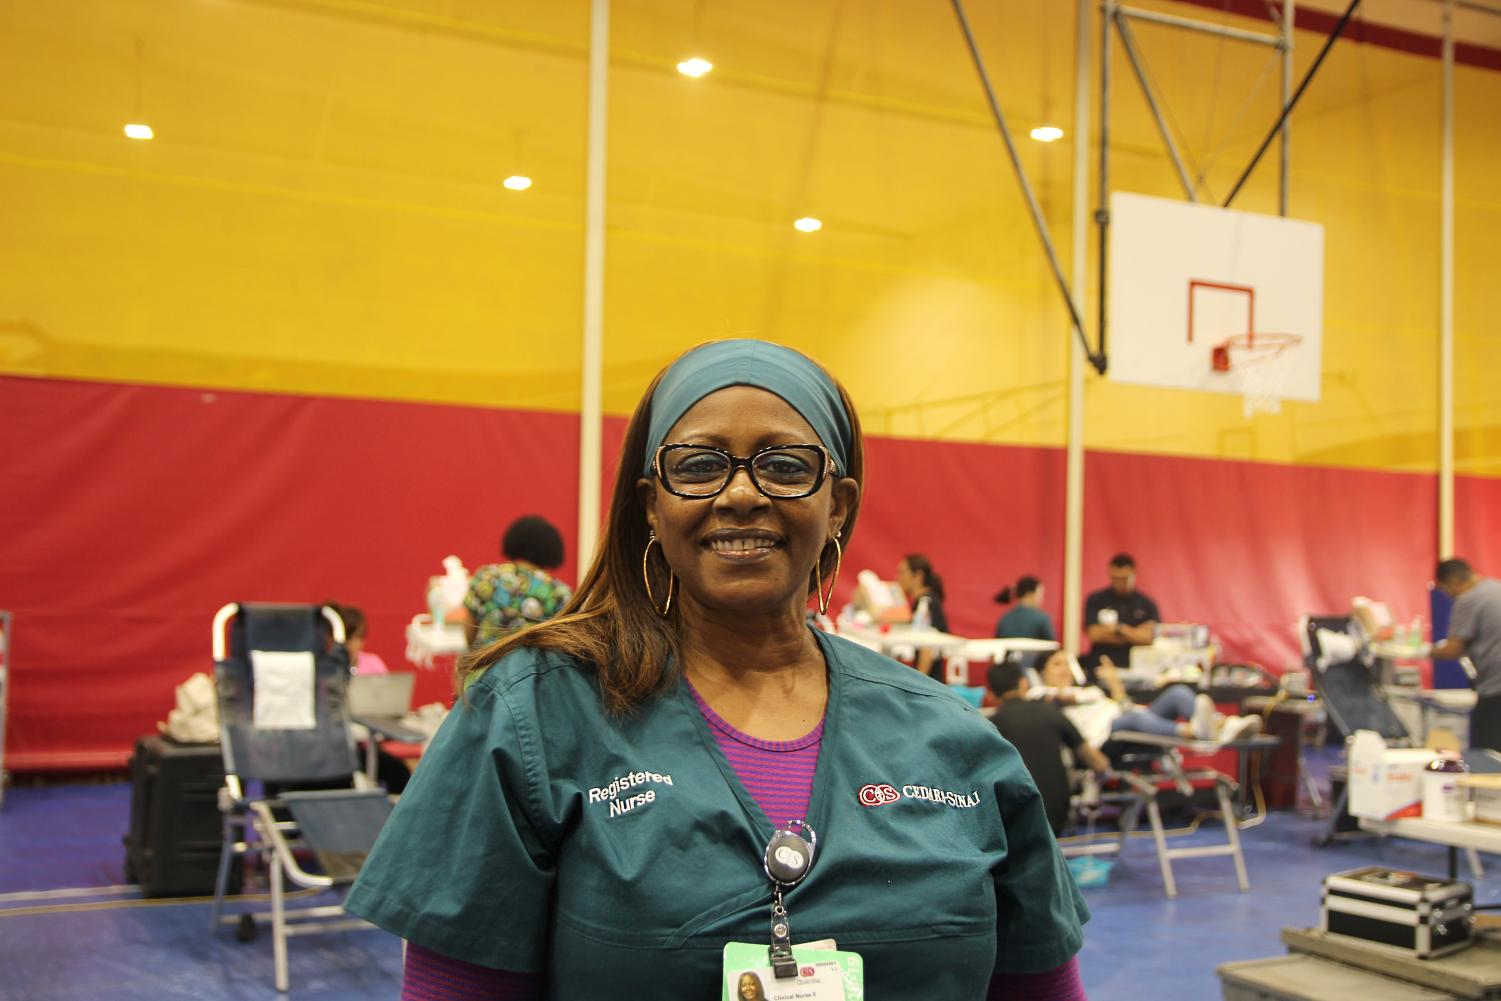 While+checking+up+on+patients%2C+Nurse+Gina+Davis+explains+why+the+blood+drive+on+September+27%2C+at+Downey+High+school+is+so+important.+%E2%80%9CThe+blood+drive+saves+lives%2C%E2%80%9D+said+Davis.+%E2%80%9CPeople+who+get+into+car+accidents+or+are+in+surgery+need+blood+and+when+student%E2%80%99s+donate%2C+they%E2%80%99re+saving+a+life.%E2%80%9D+